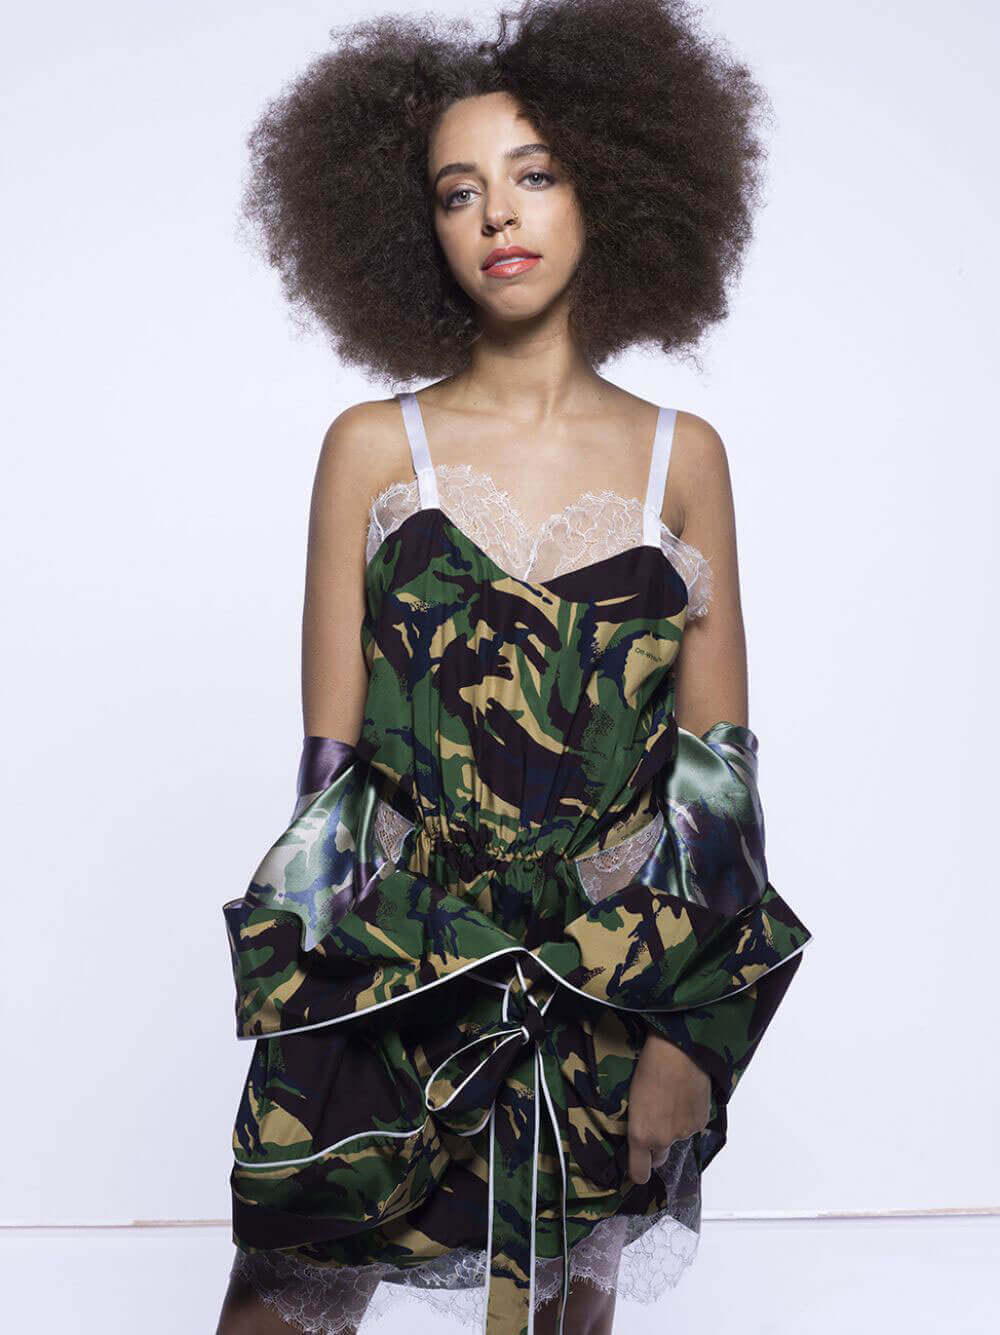 Hayley Law Photos for Georgie Magazine, August 2017